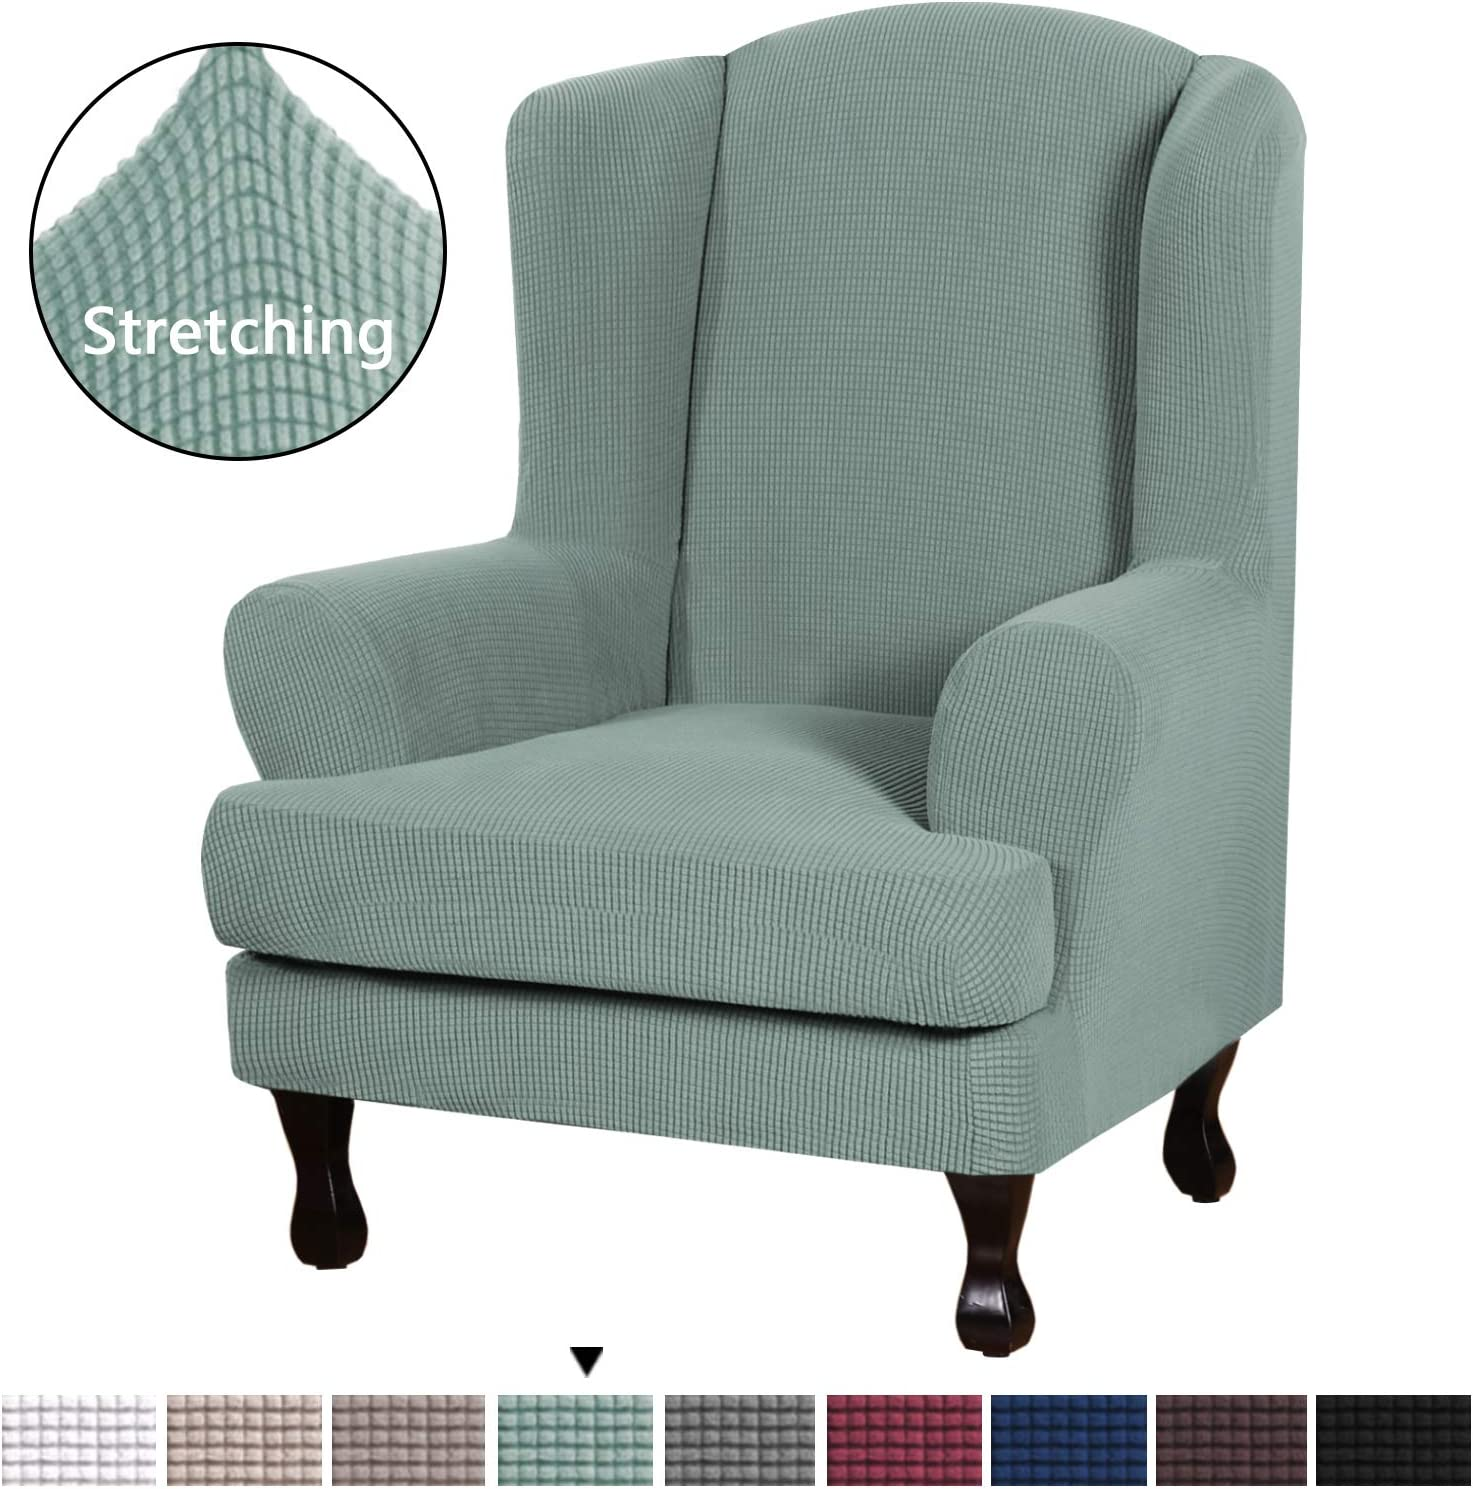 Elegant Luxury High Spandex Sofa Cover Stretch Jacquard Furniture Protector, 2 Piece Super Stretch Stylish Furniture Cover/Wingback Chair Cover Slipcover Machine Washable, Cyan, Wing Chair